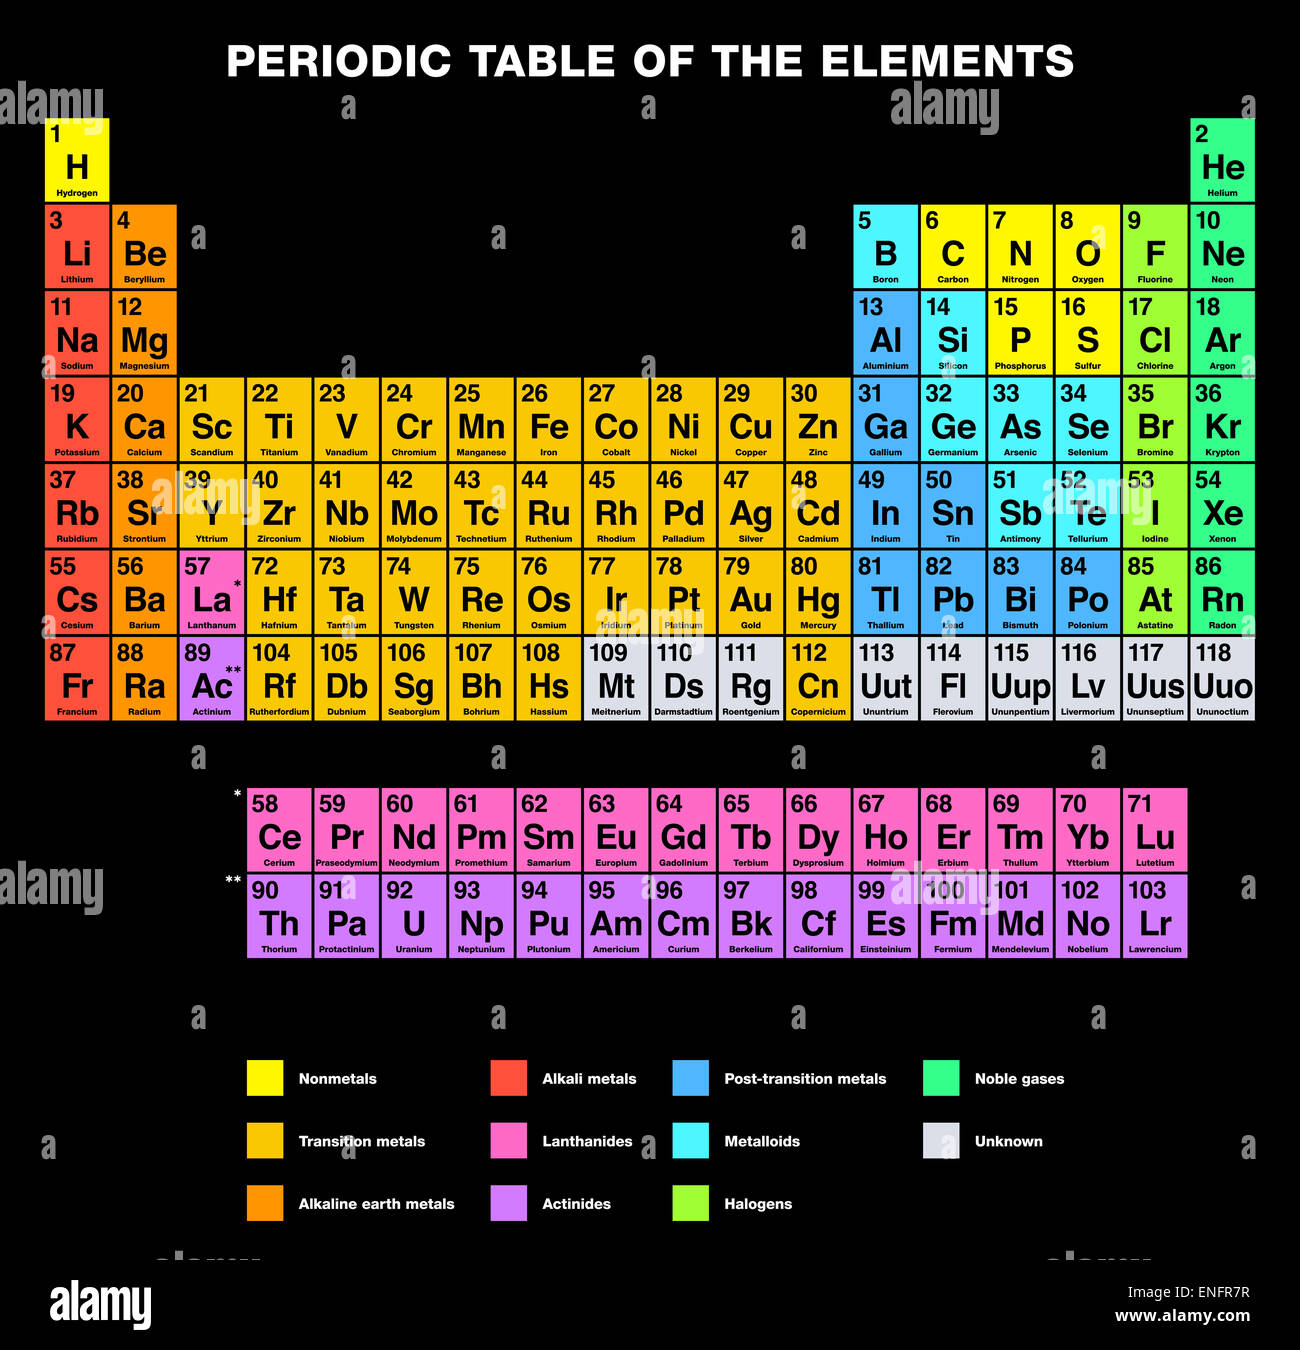 Periodic table of the elements english labeling stock photo periodic table of the elements english labeling gamestrikefo Images